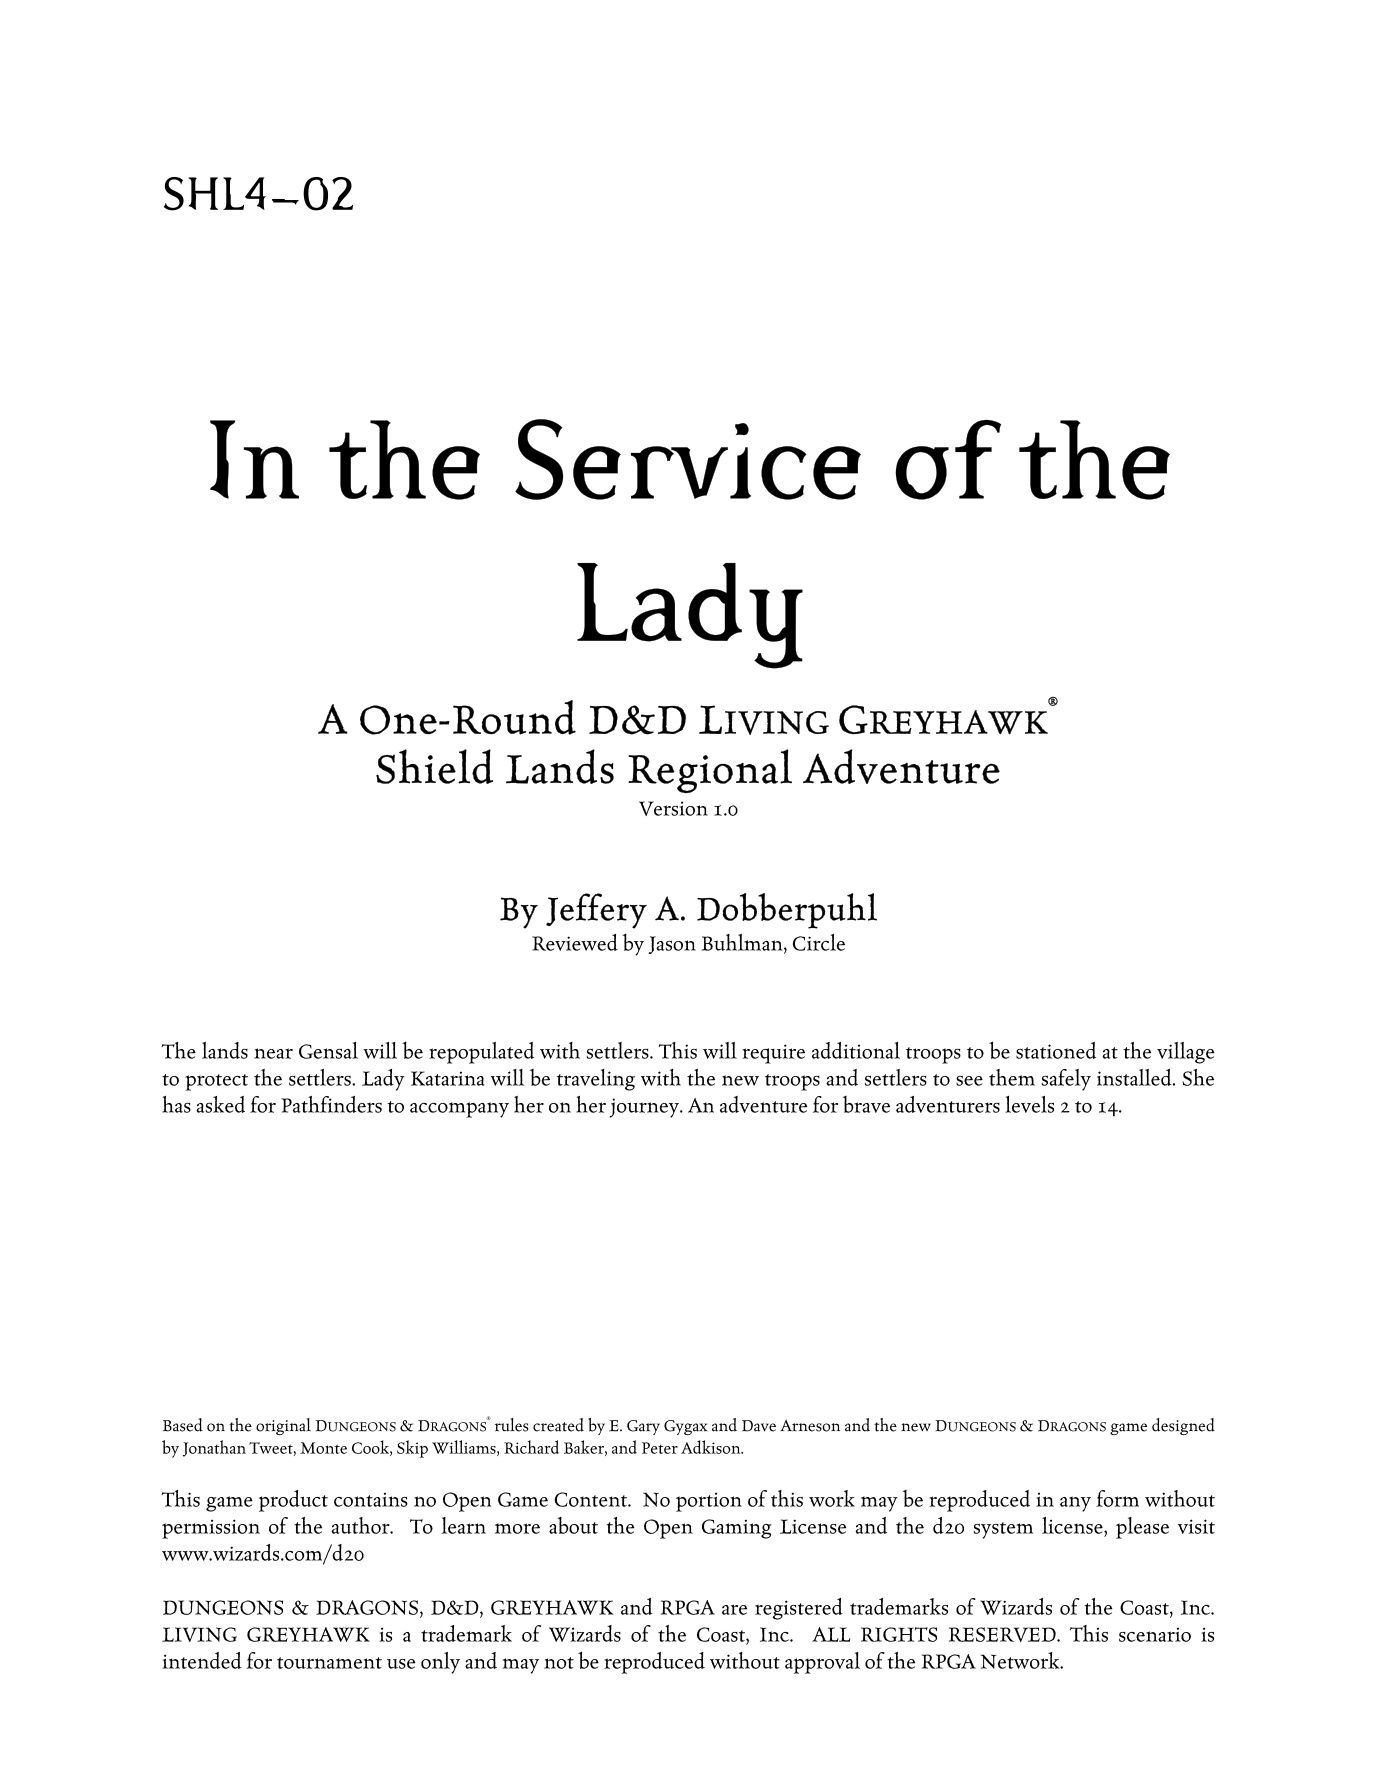 SHL4-02: In the Service of the Lady | Image | BoardGameGeek